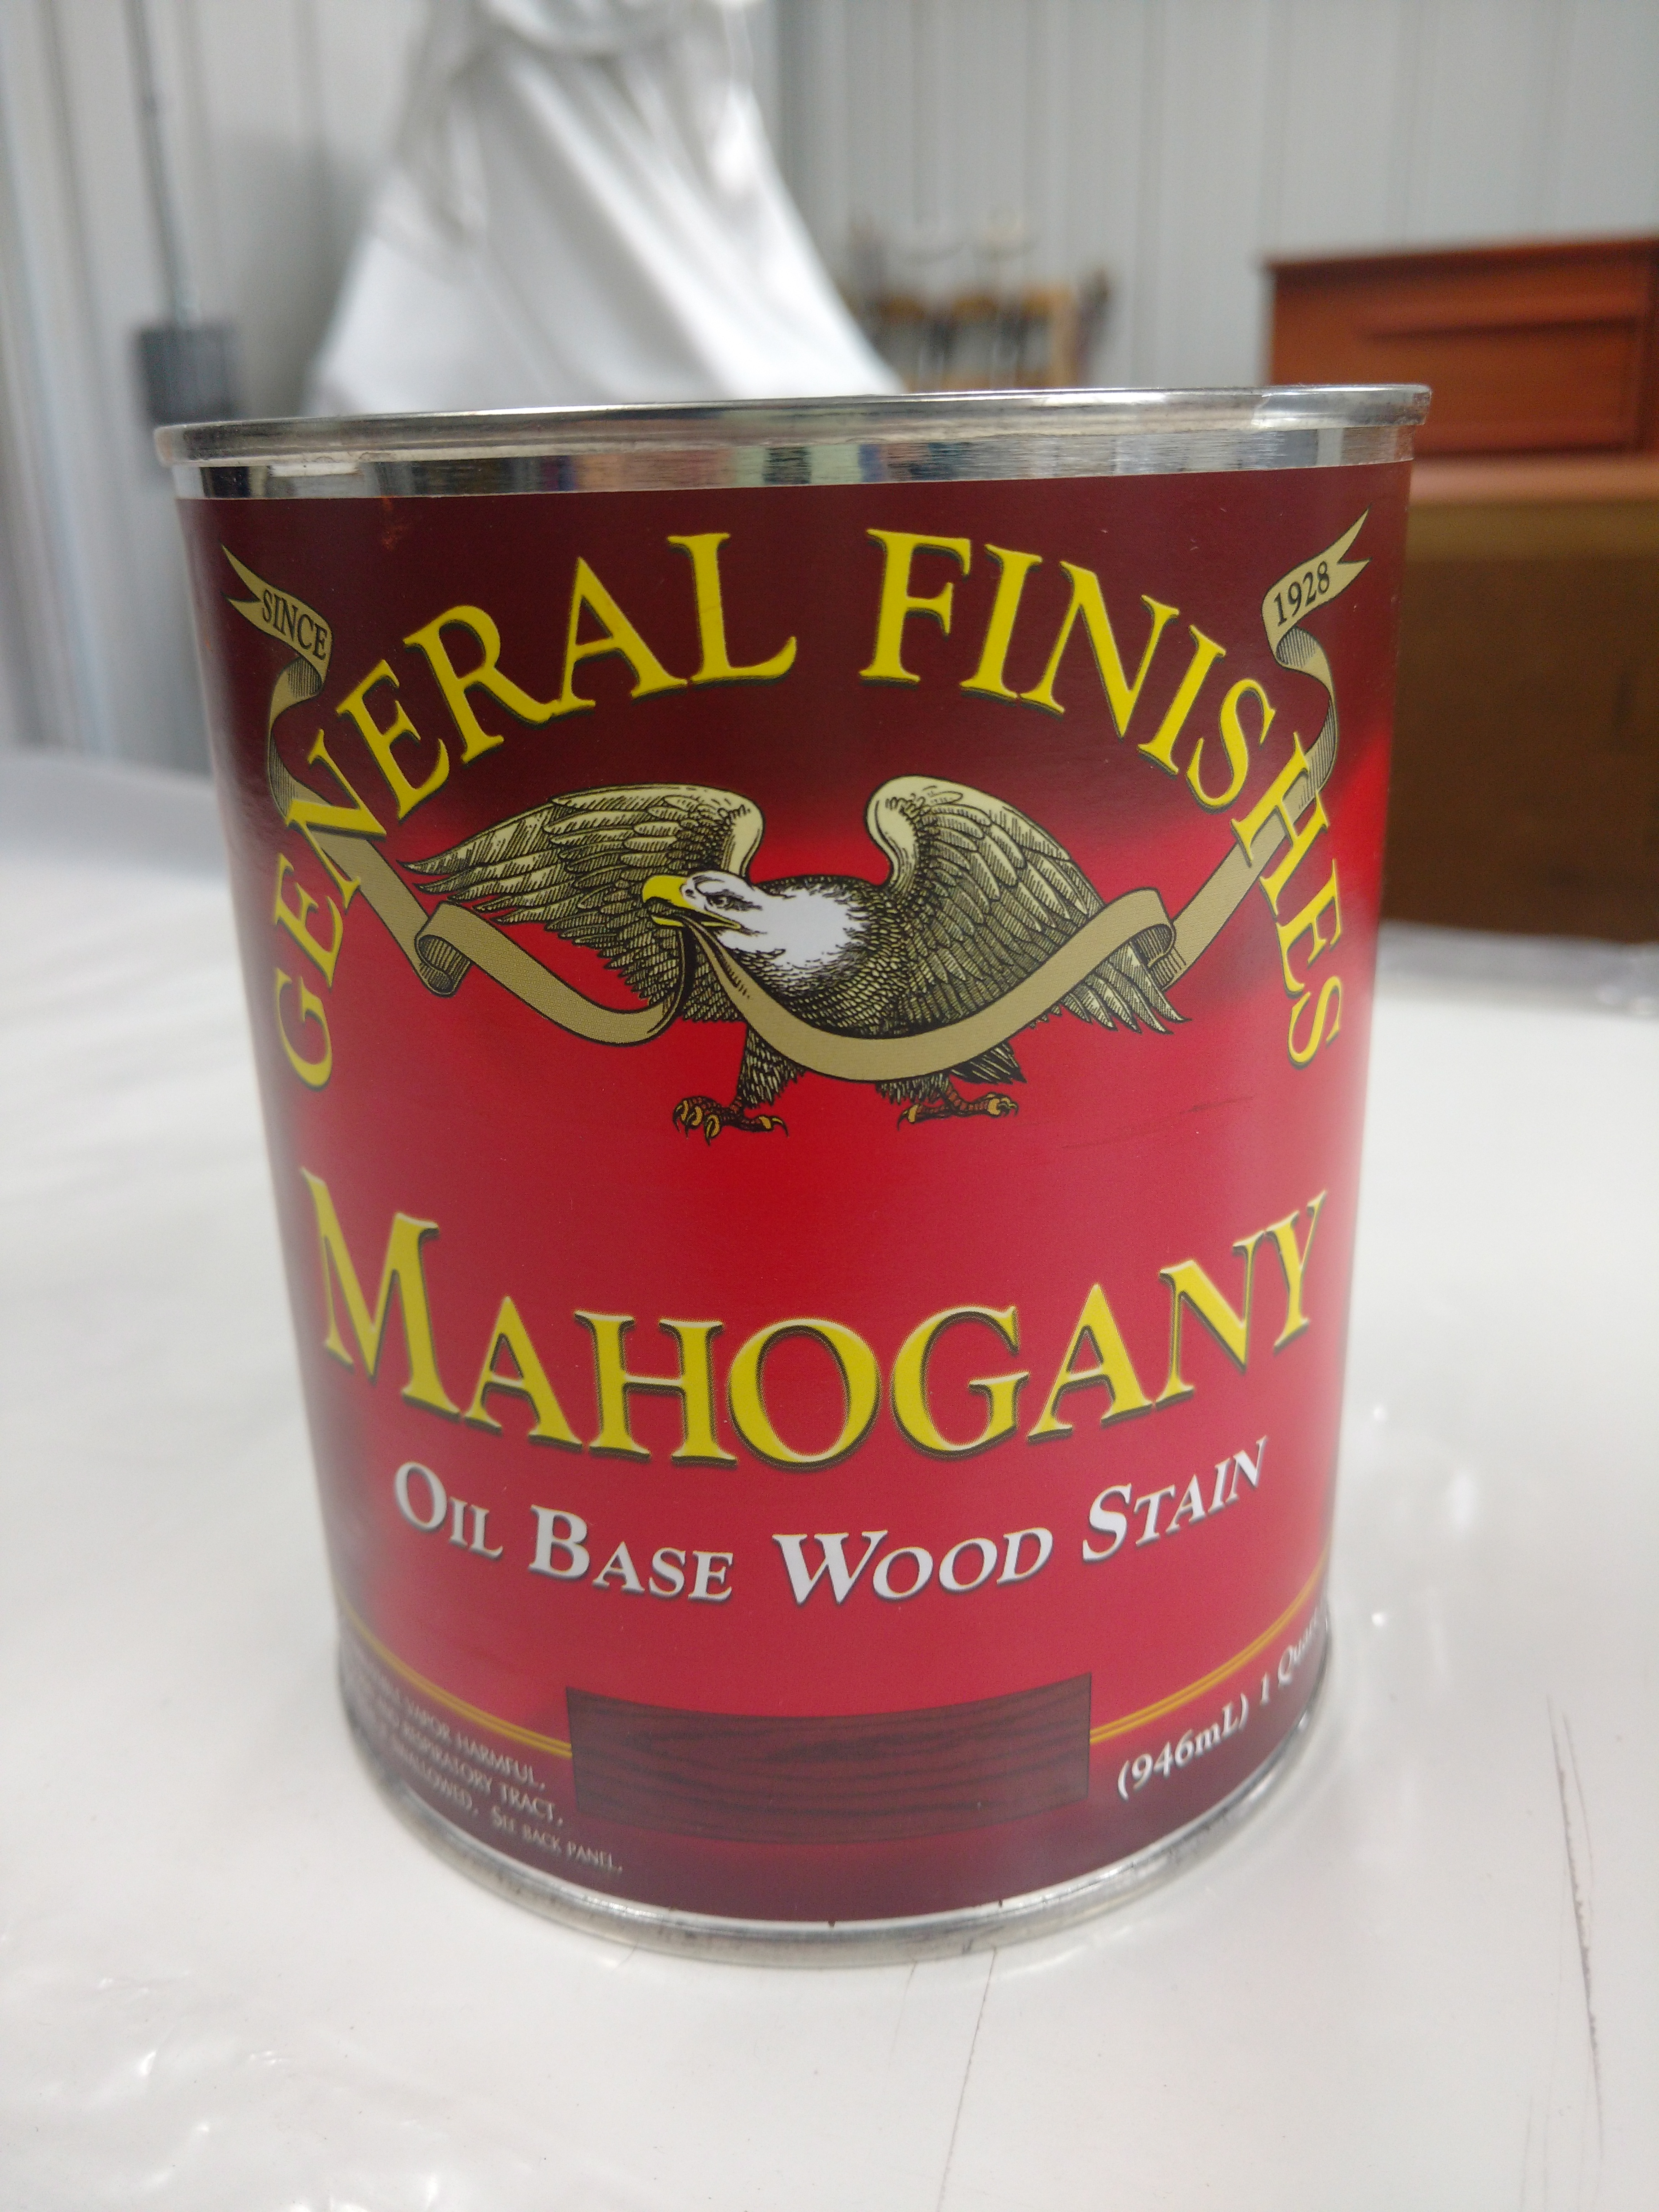 After a little light sanding I applied General Finishes Mahogany stain.